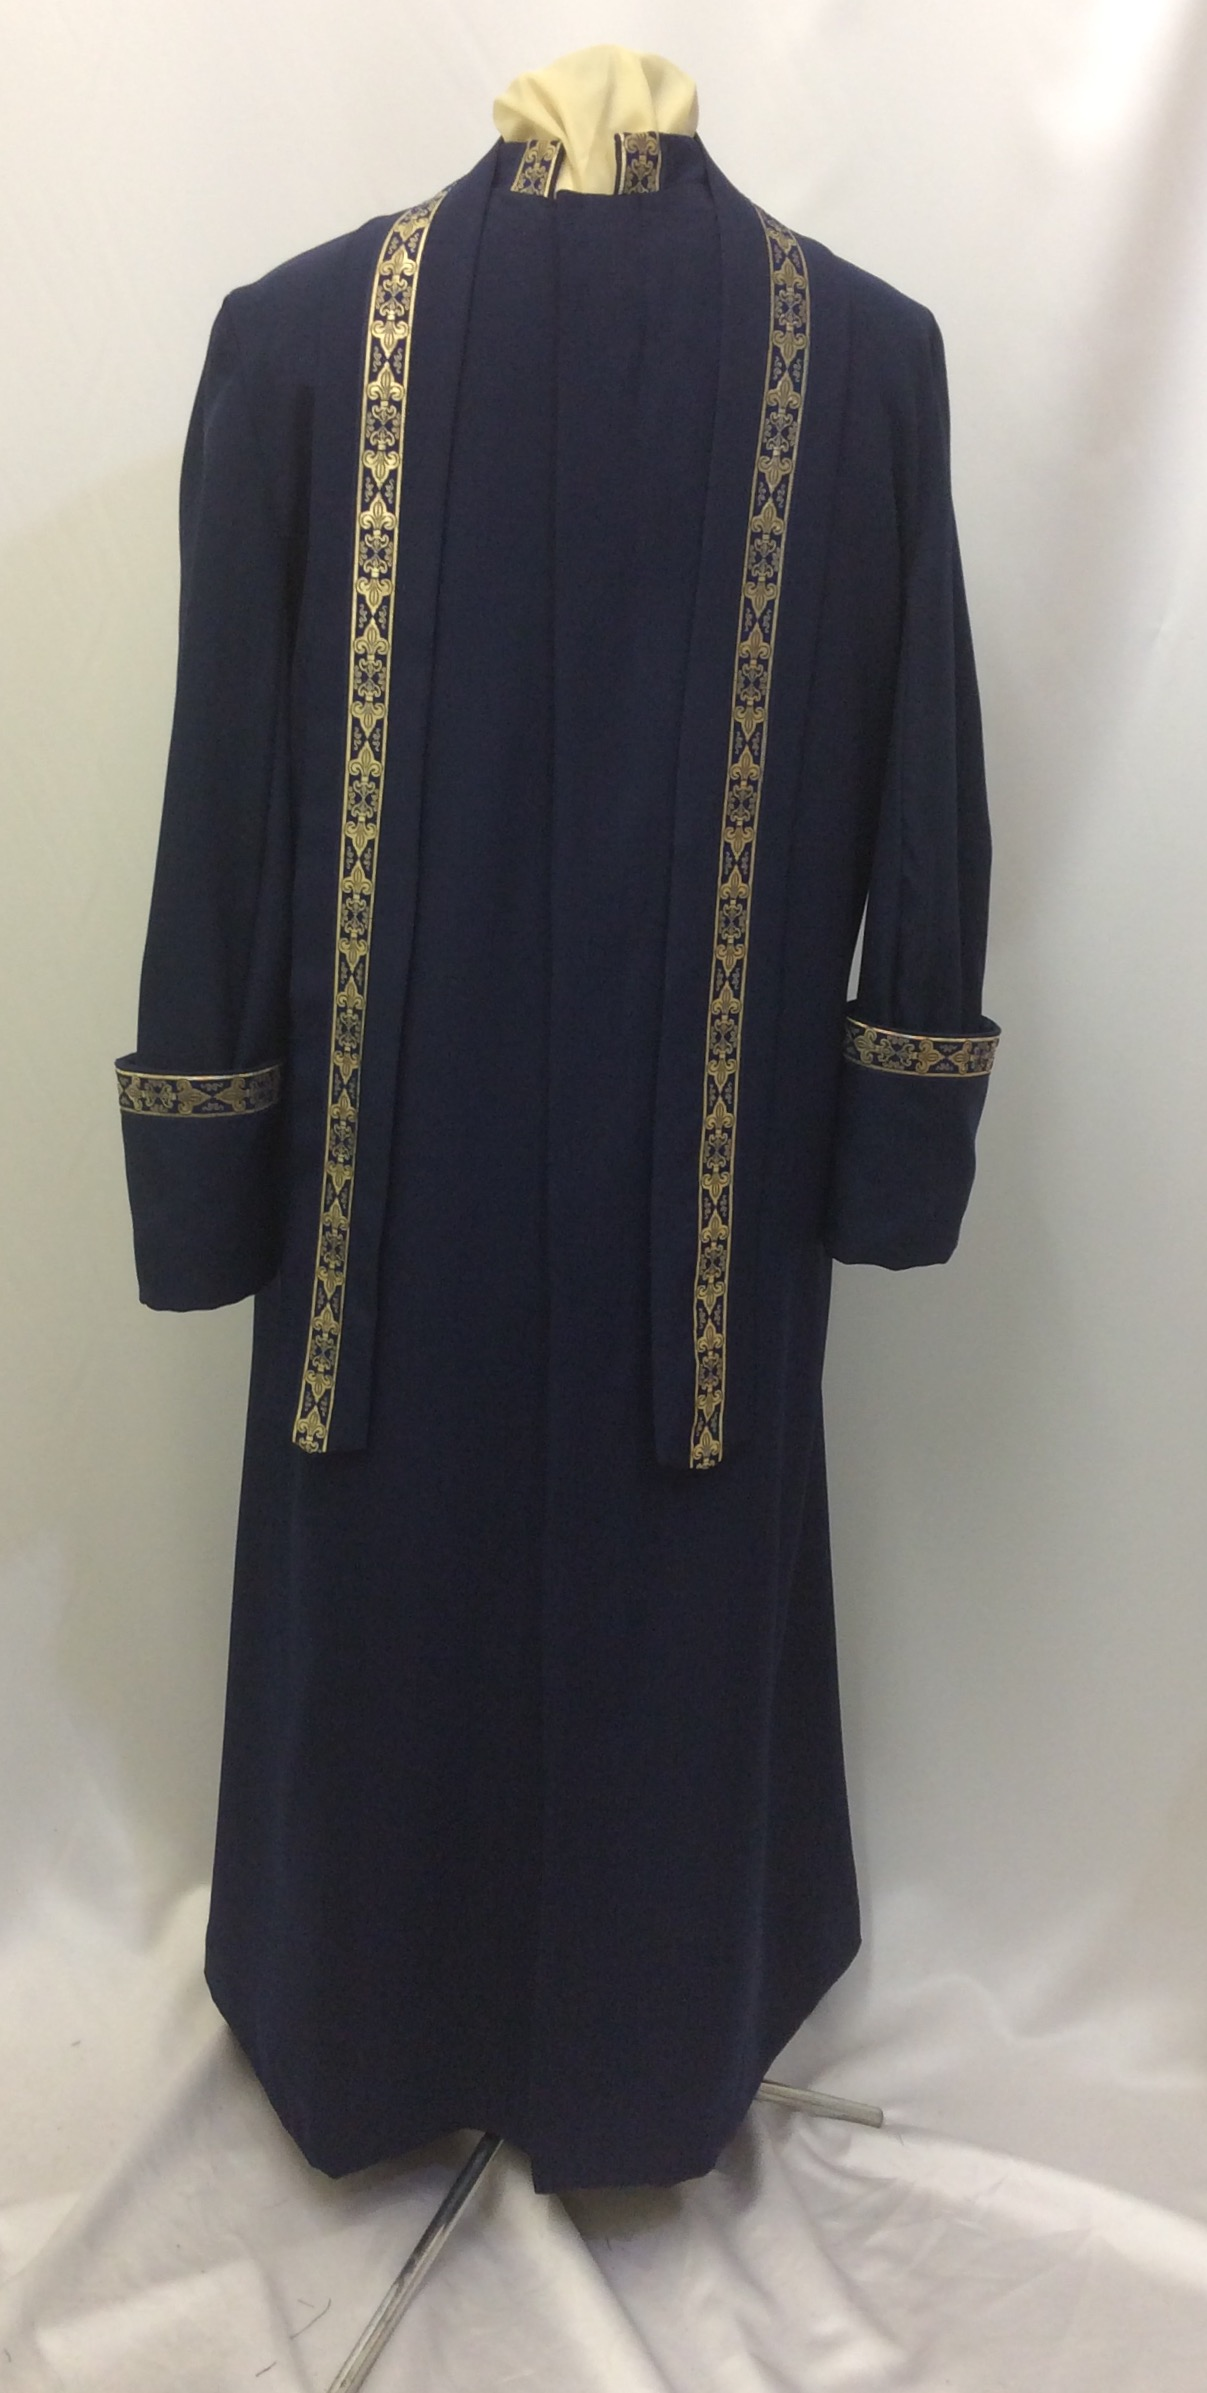 navy custom robe w gold trim.jpg